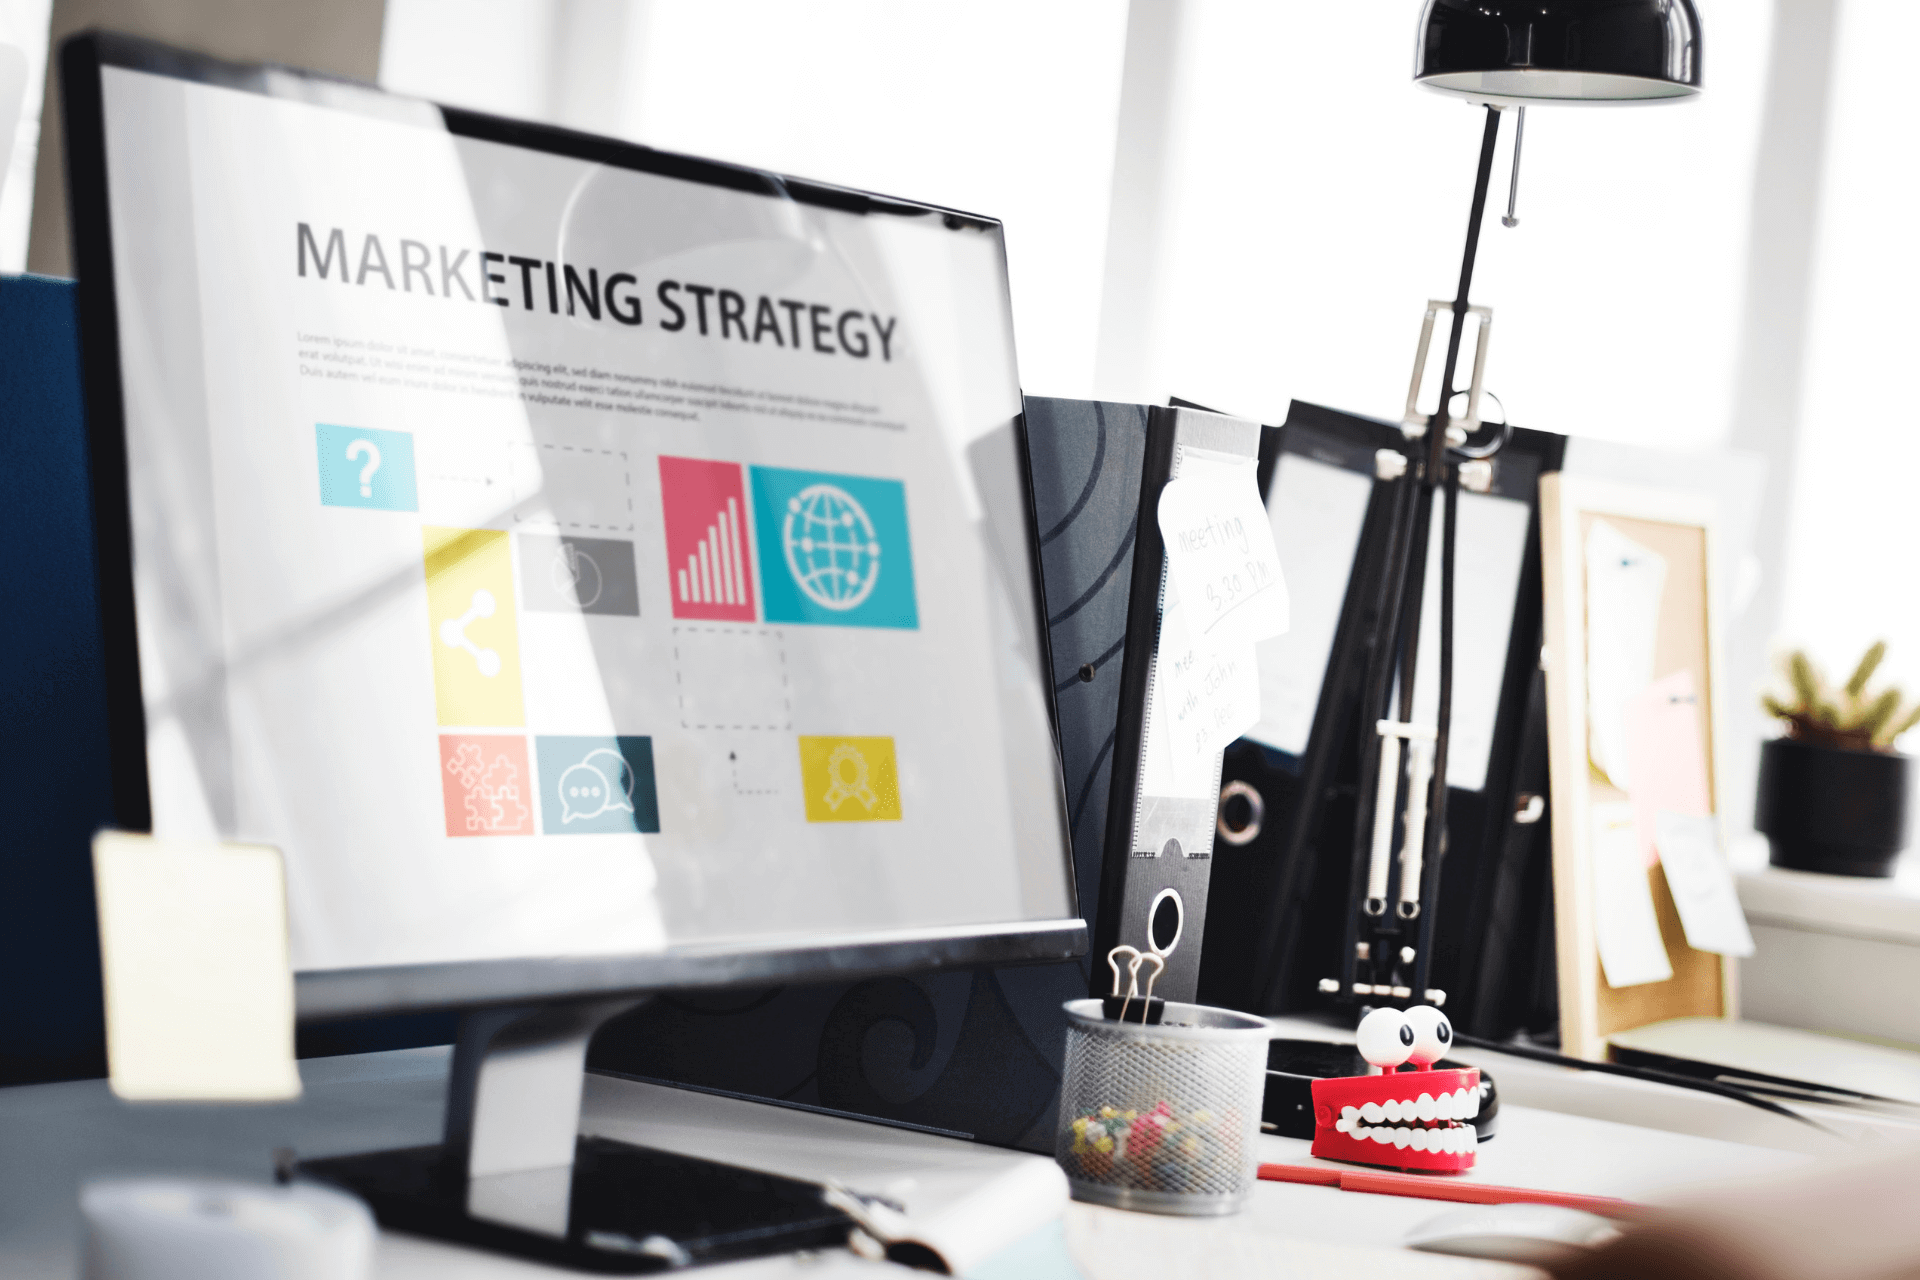 This image depicts a computer screen with the letters marketing strategy